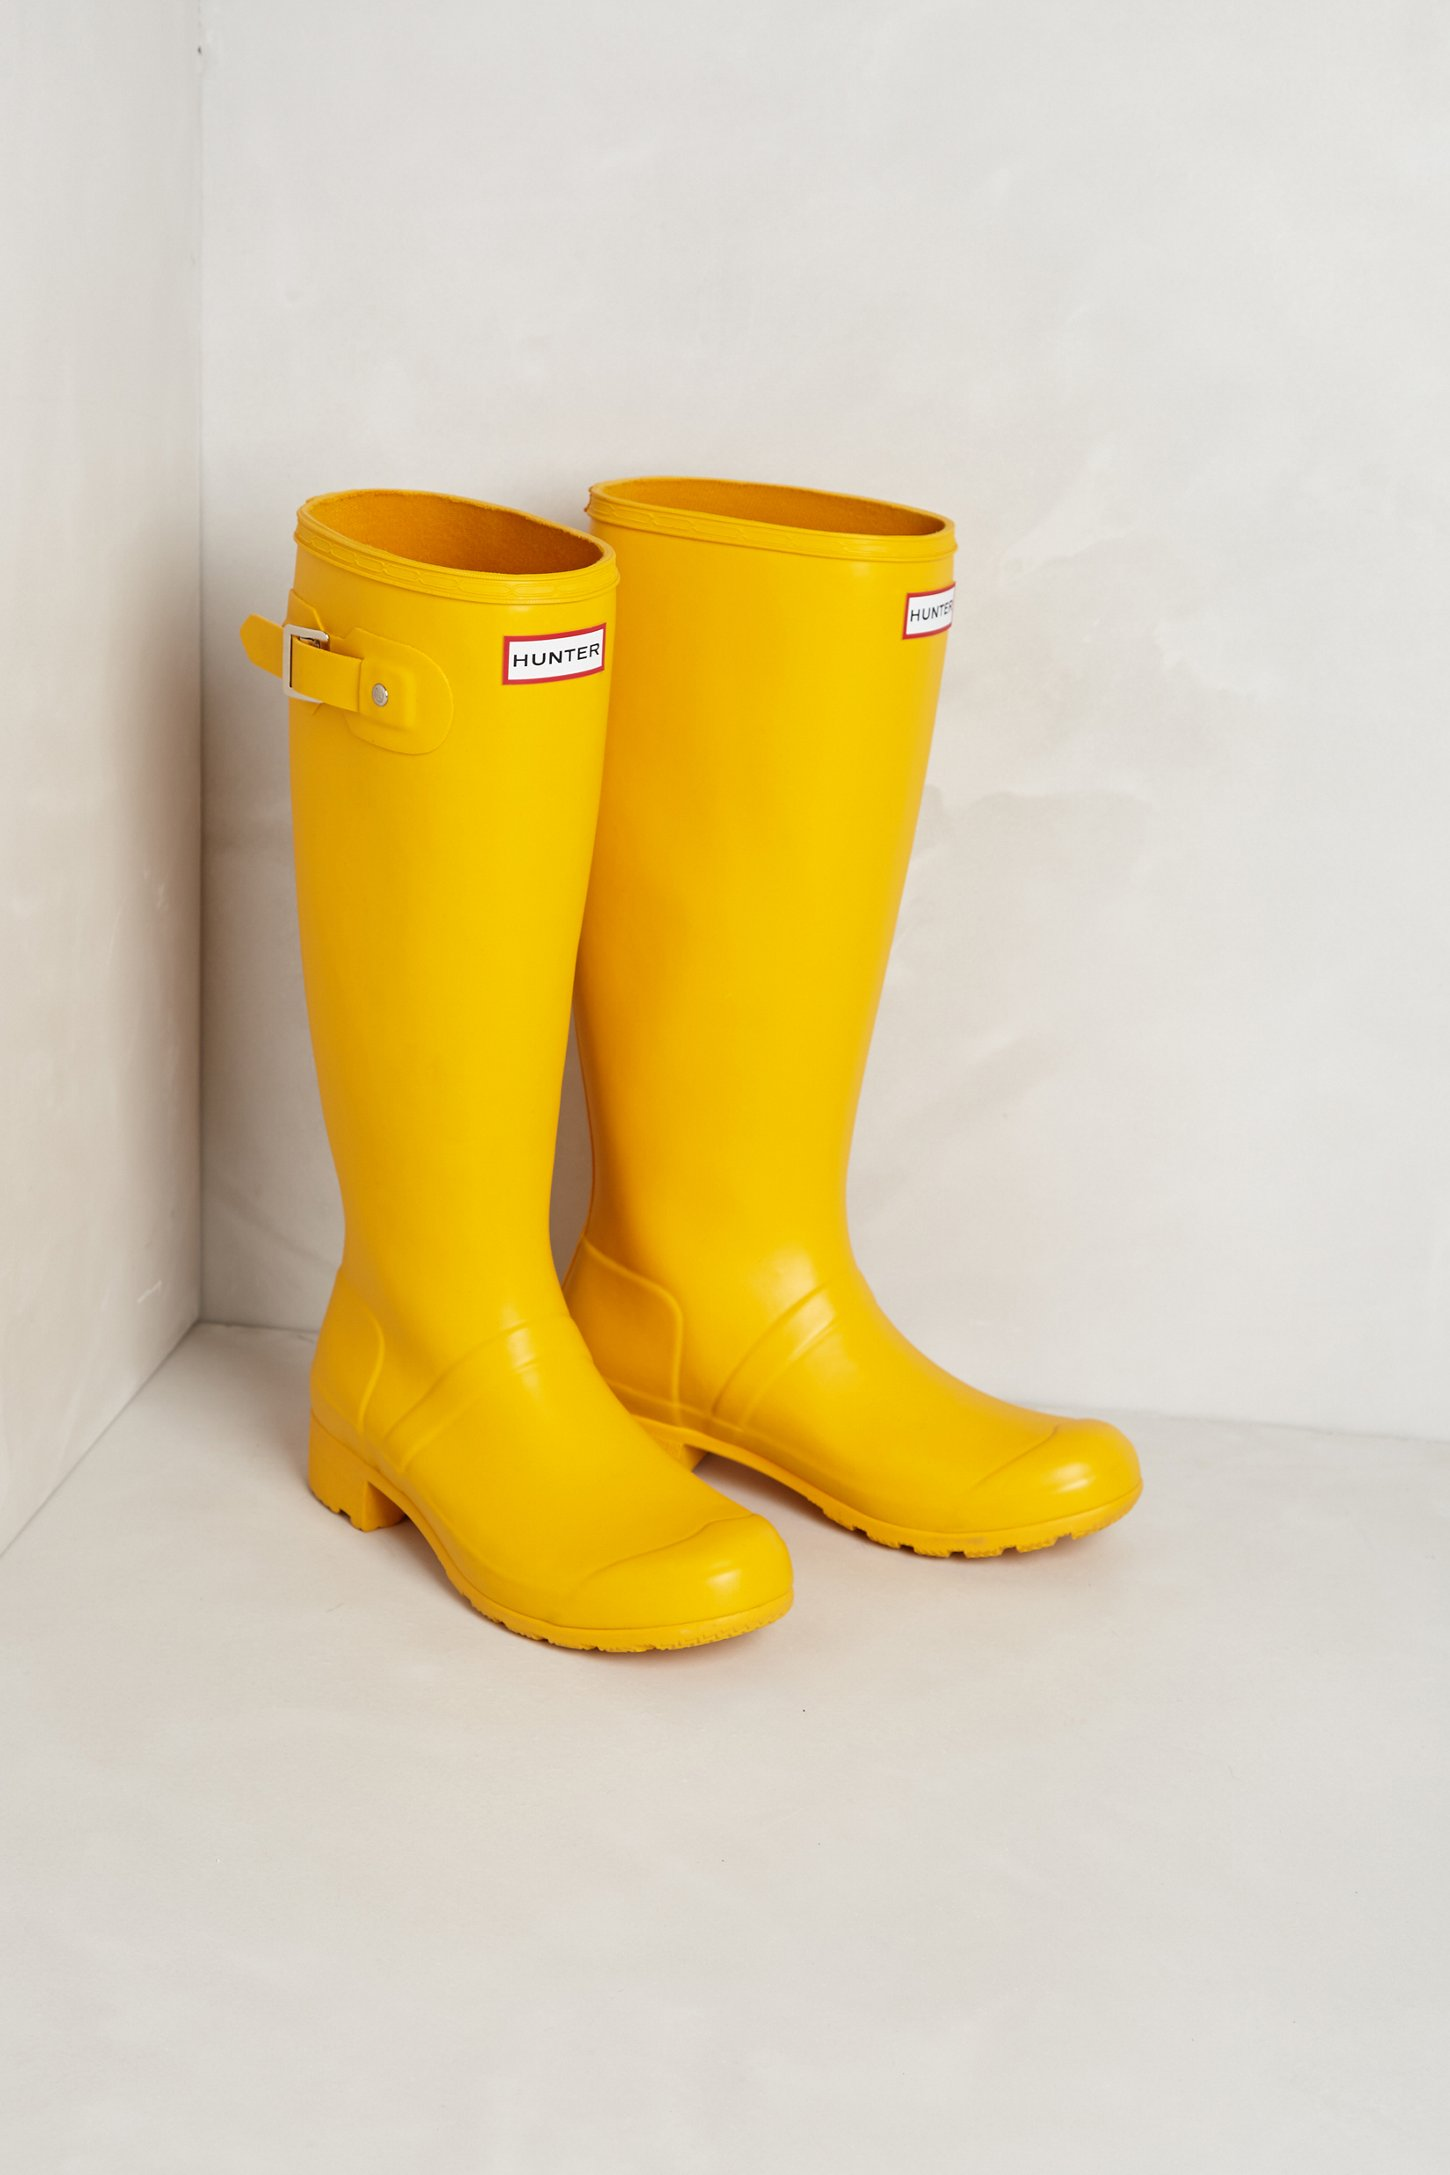 Tall Yellow Rain Boots Coltford Boots